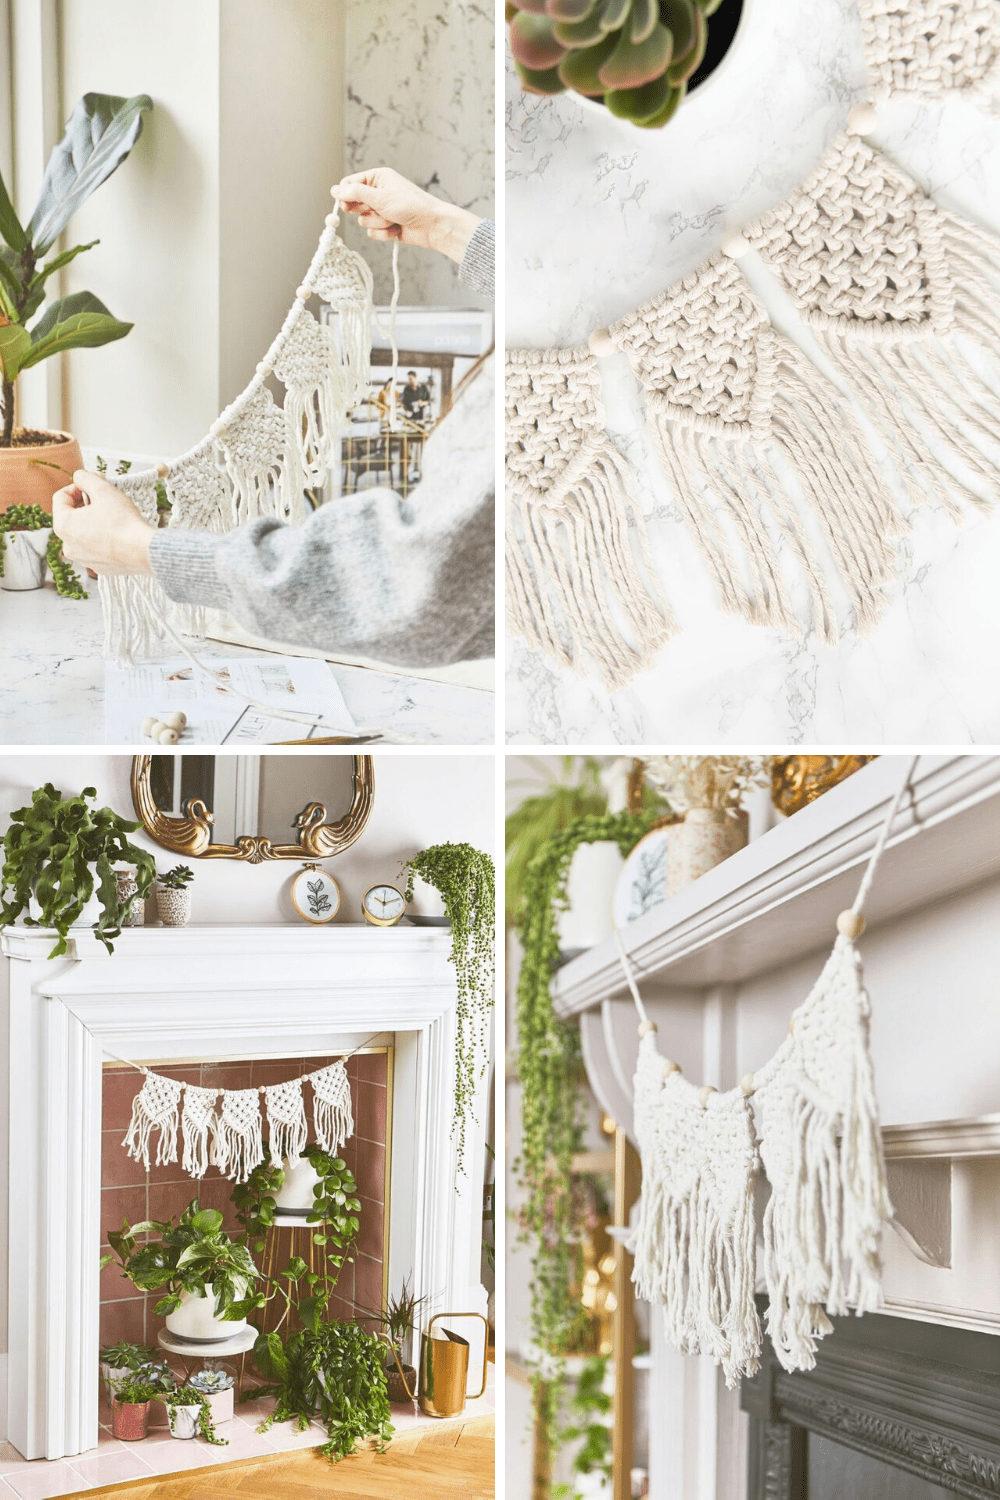 This DIY boho macrame garland will look fabulous over your fireplace